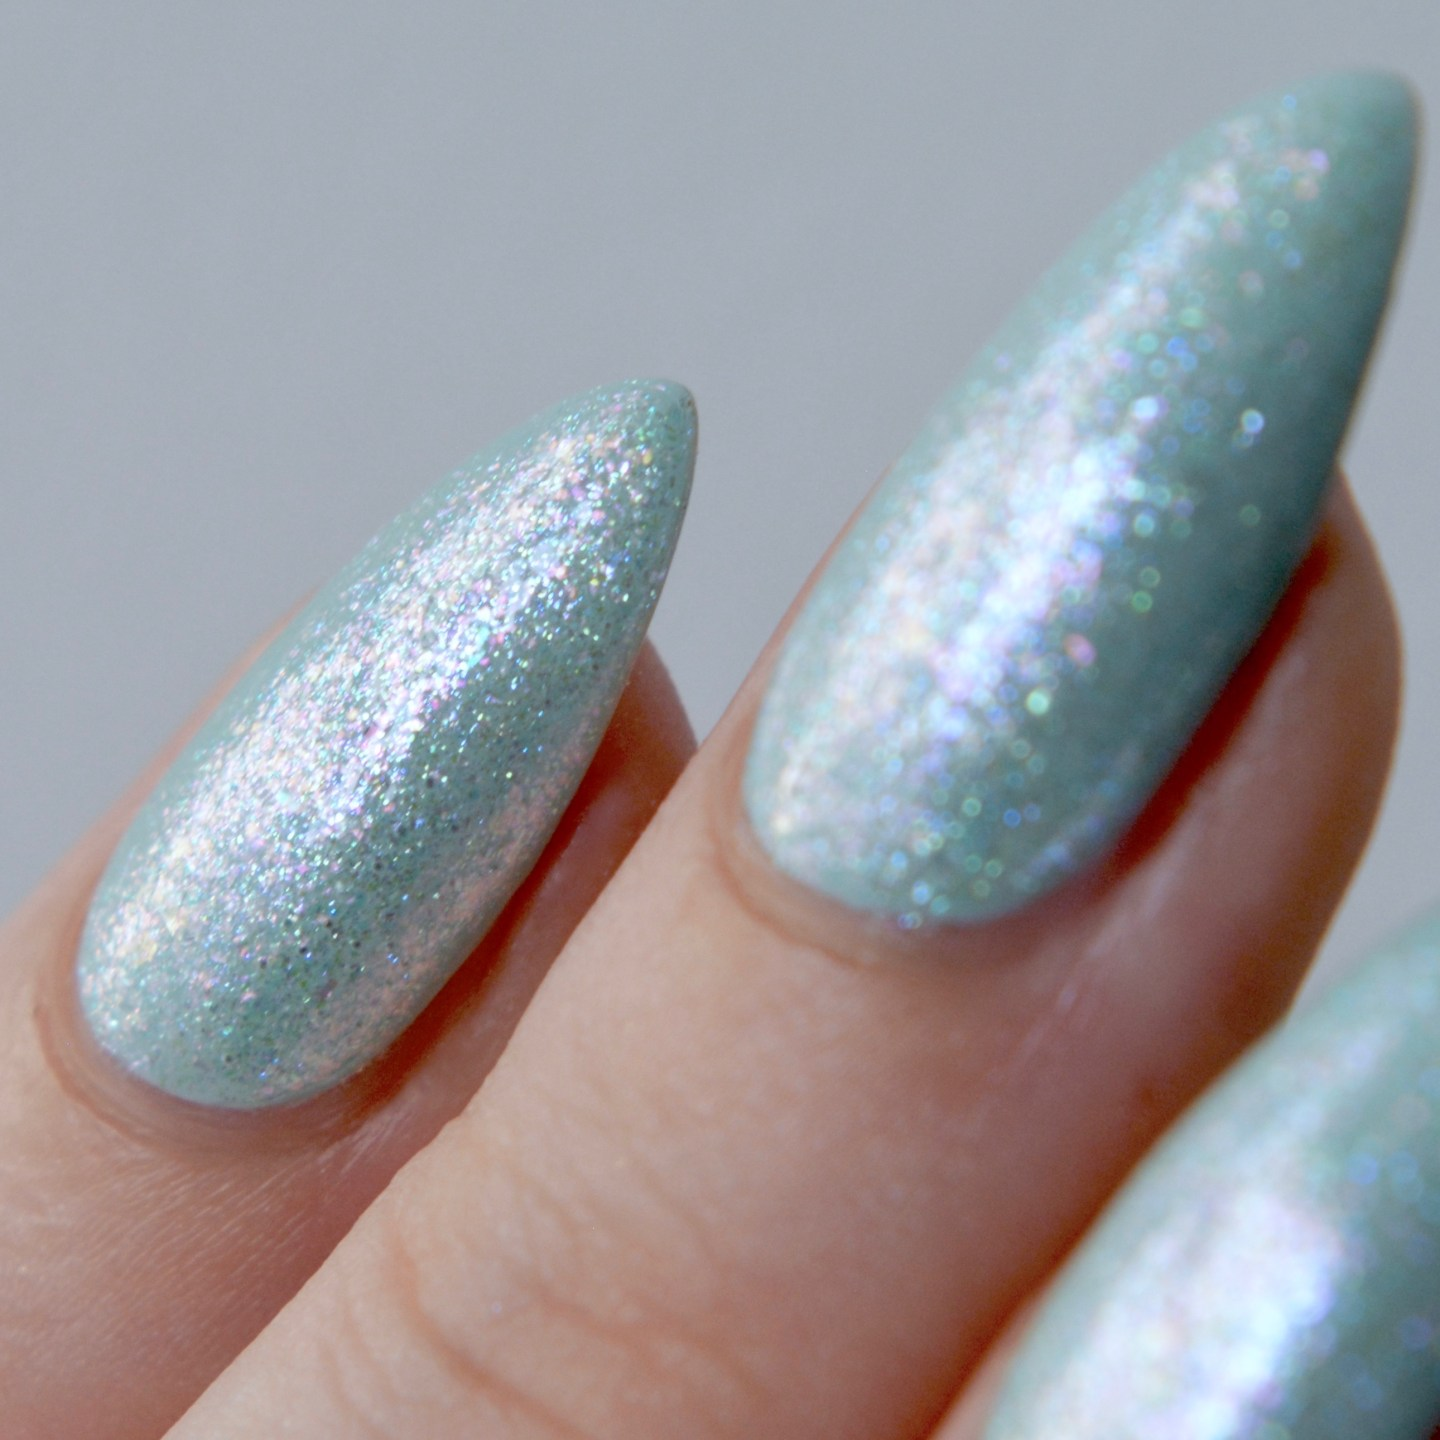 Nails Inc Mindful Manicure swatches 'Balancing Act' (over light blue polish)